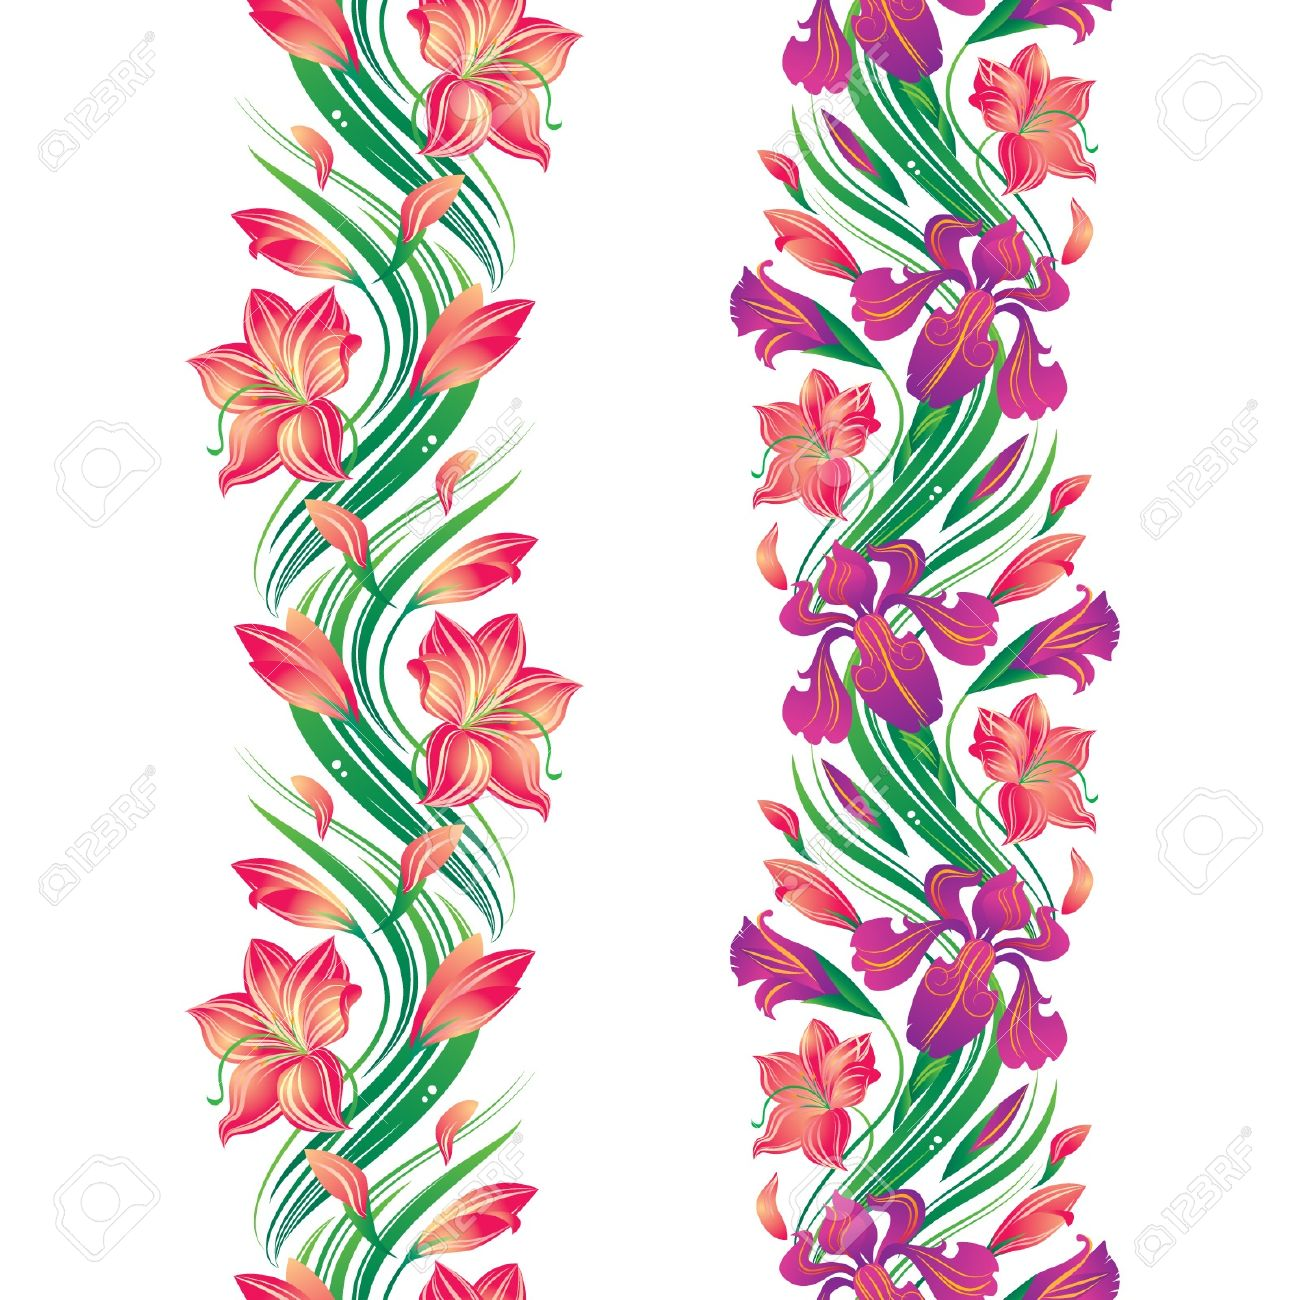 37215 Flower free clipart.